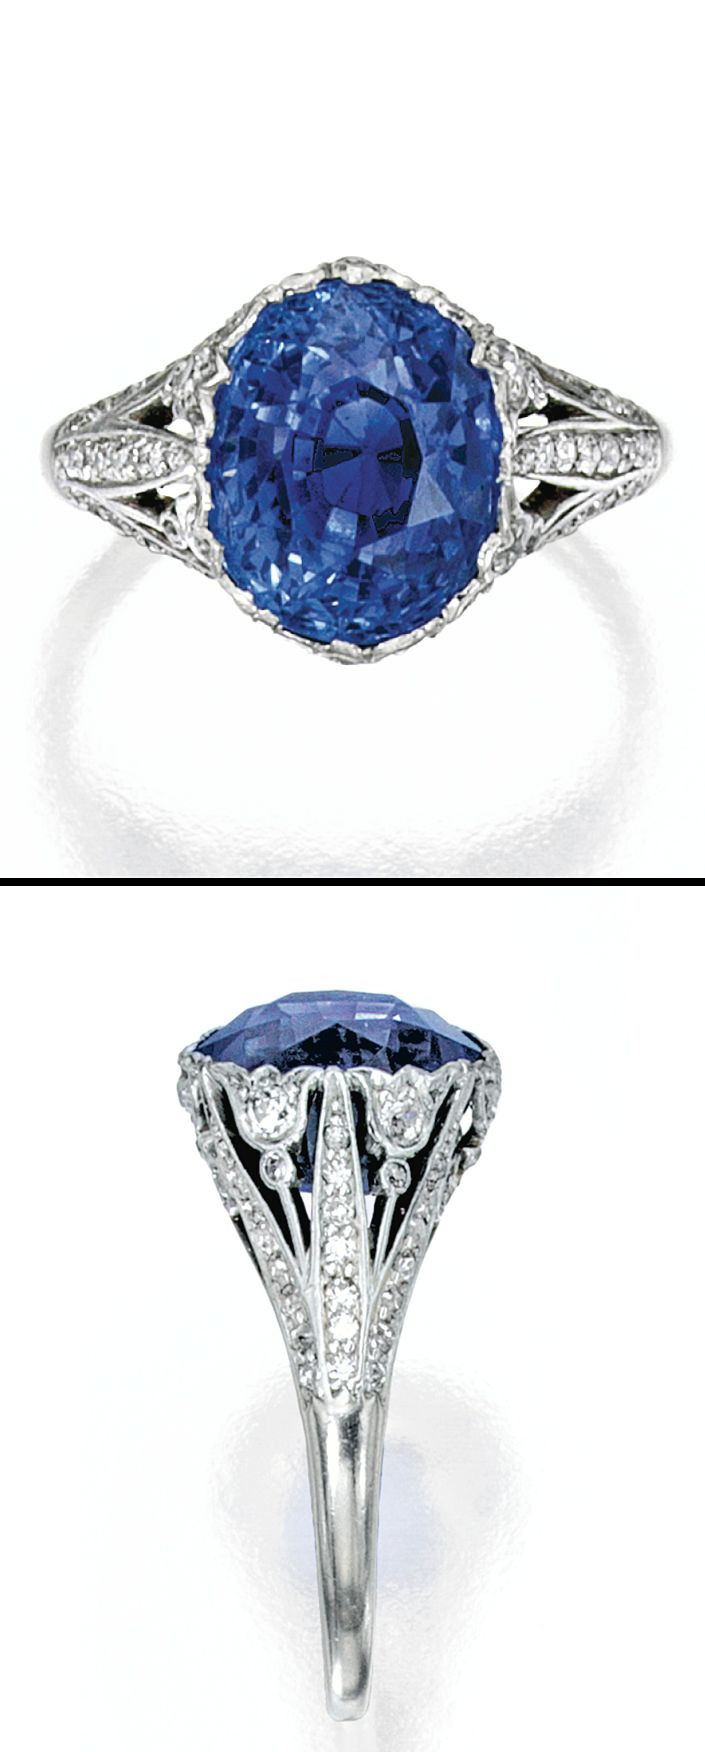 PLATINUM, SAPPHIRE AND DIAMOND RING, MARCUS & CO.  Centered by a cushion-cut sapphire weighing approximately 8.95 carats, within a floral mounting set with old European and single-cut diamonds weighing approximately .95 carat, size 6¾, signed M & Co, circa 1925.